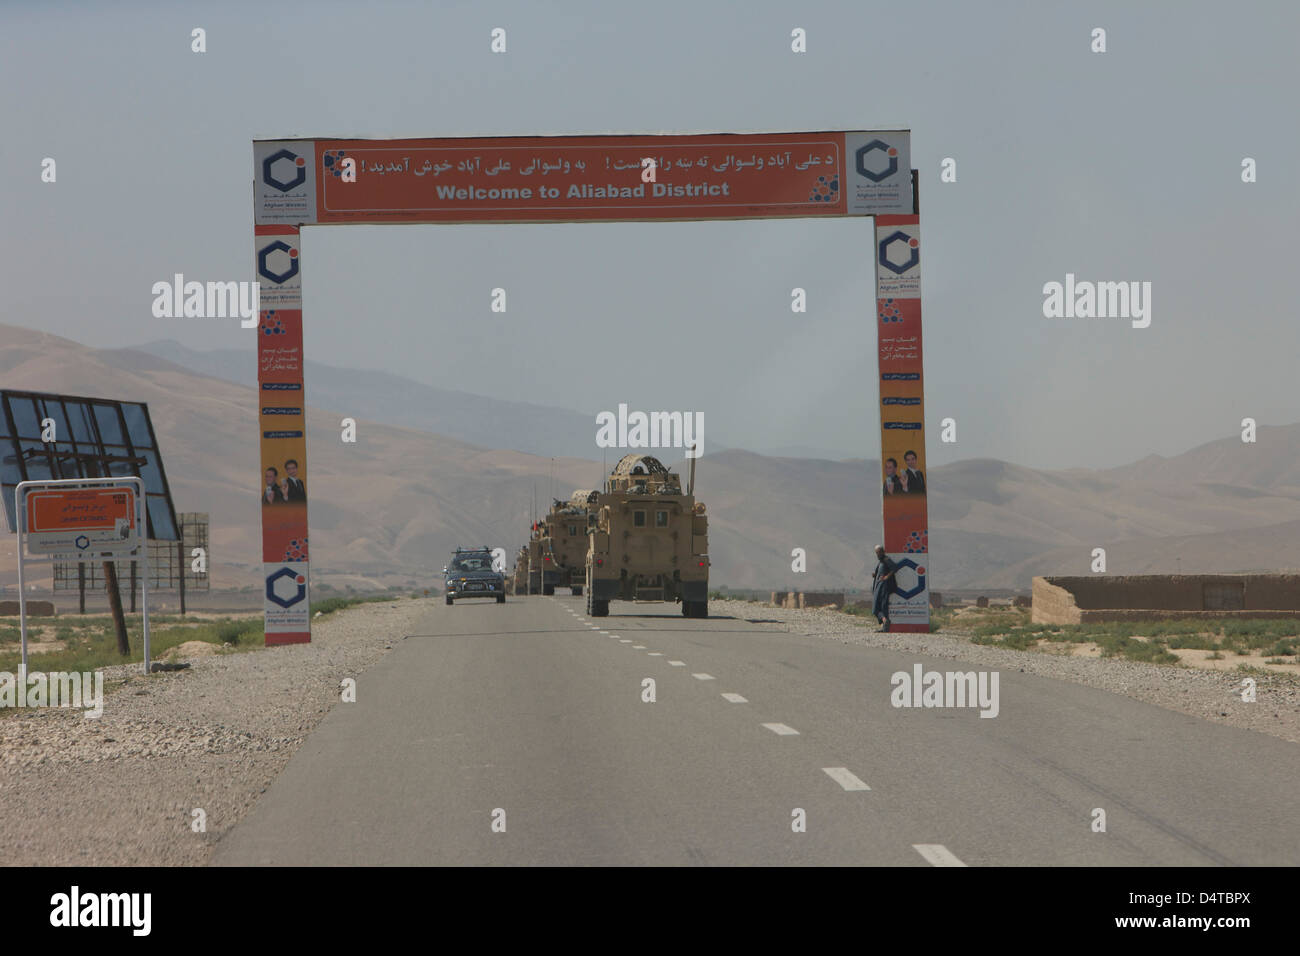 A convoy of U.S. Navy EOD Cougar MRAPs driving south on A7 towards Aliabad from Kunduz, Afghanistan. - Stock Image